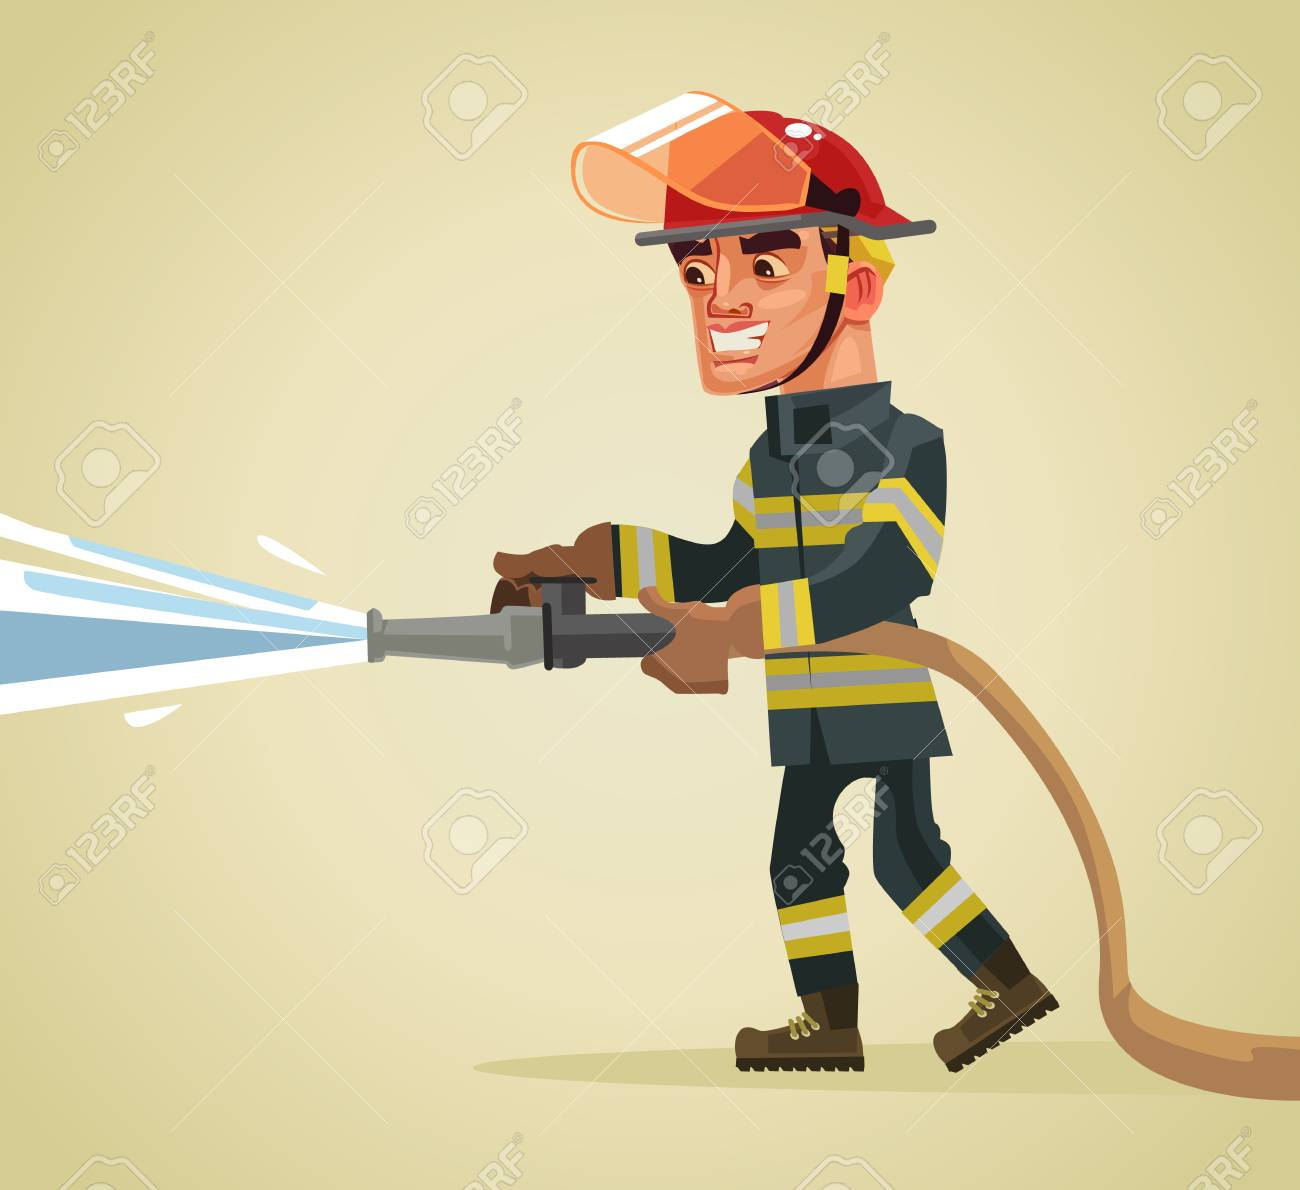 Smiling fireman character holding hose extinguishing fire with water. Vector flat cartoon illustration - 85562225